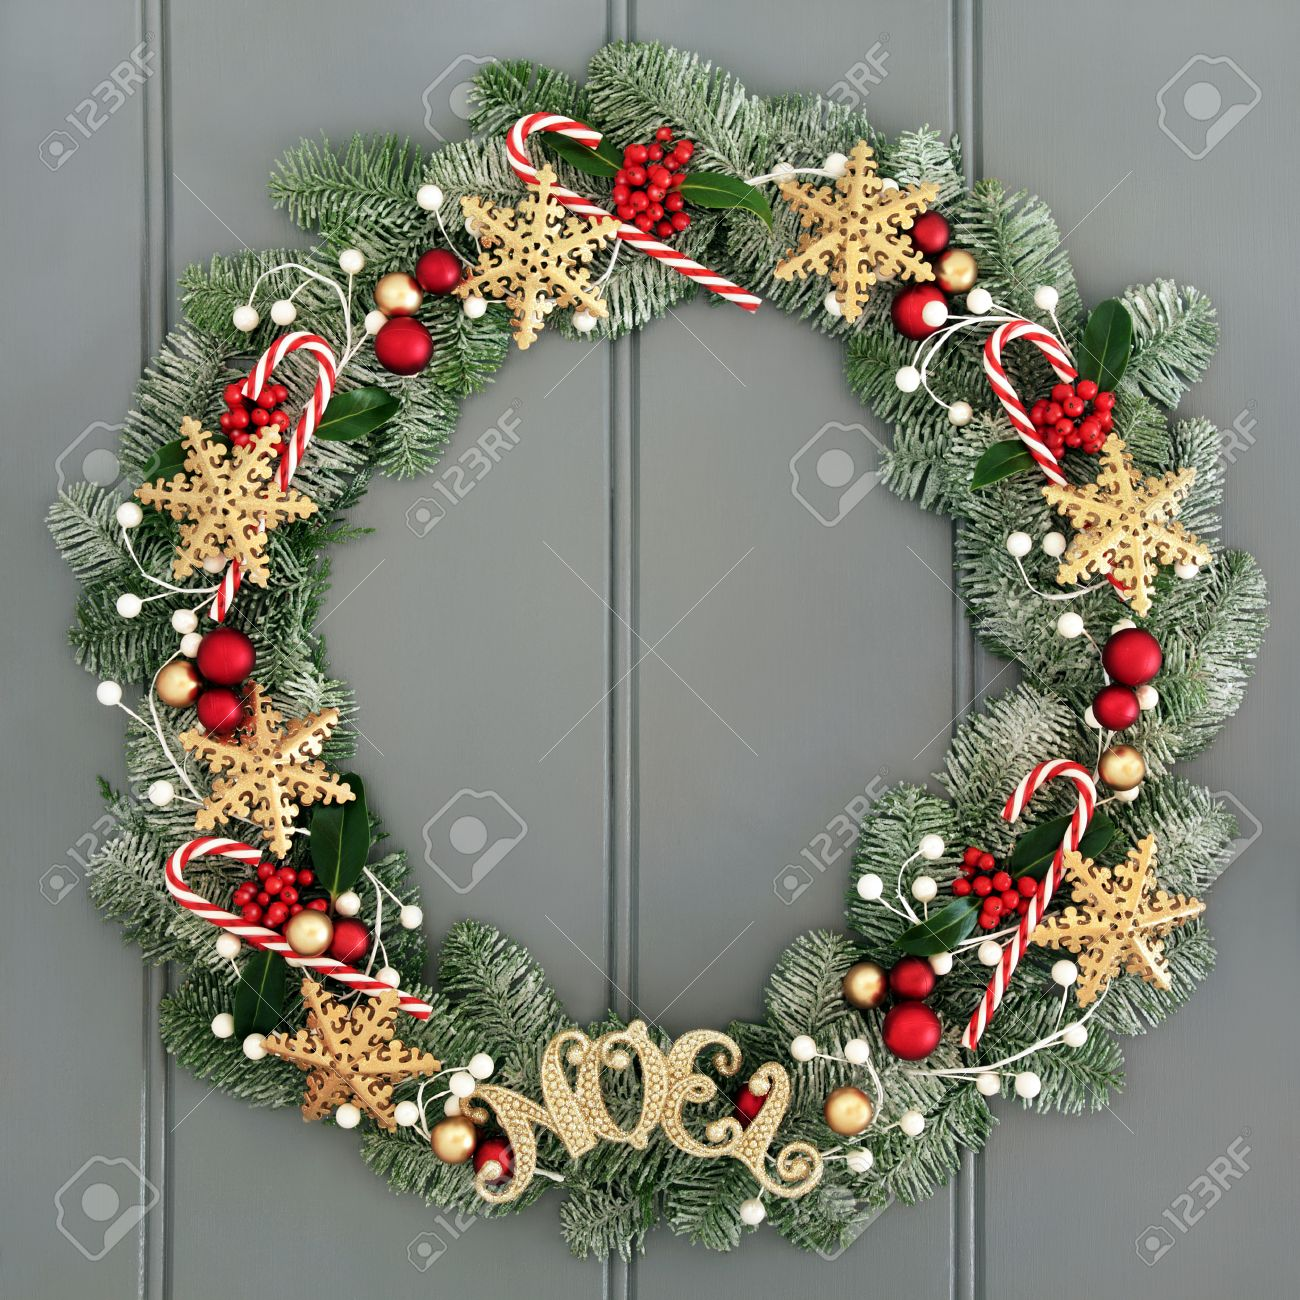 Christmas Wreath With Noel Sign And Snowflake Decorations Candy Stock Photo Picture And Royalty Free Image Image 64715540